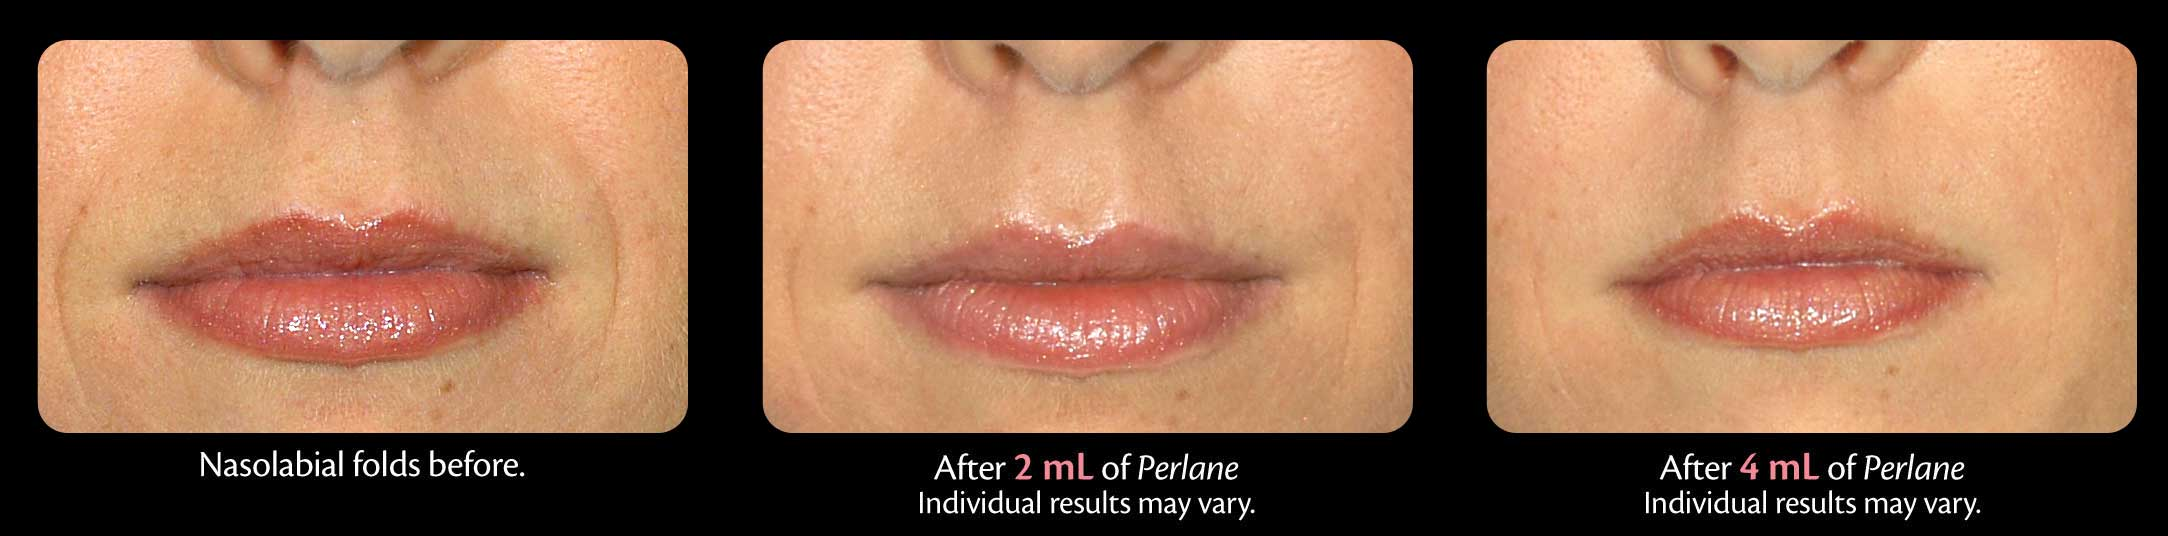 Perlane Treatment before and after